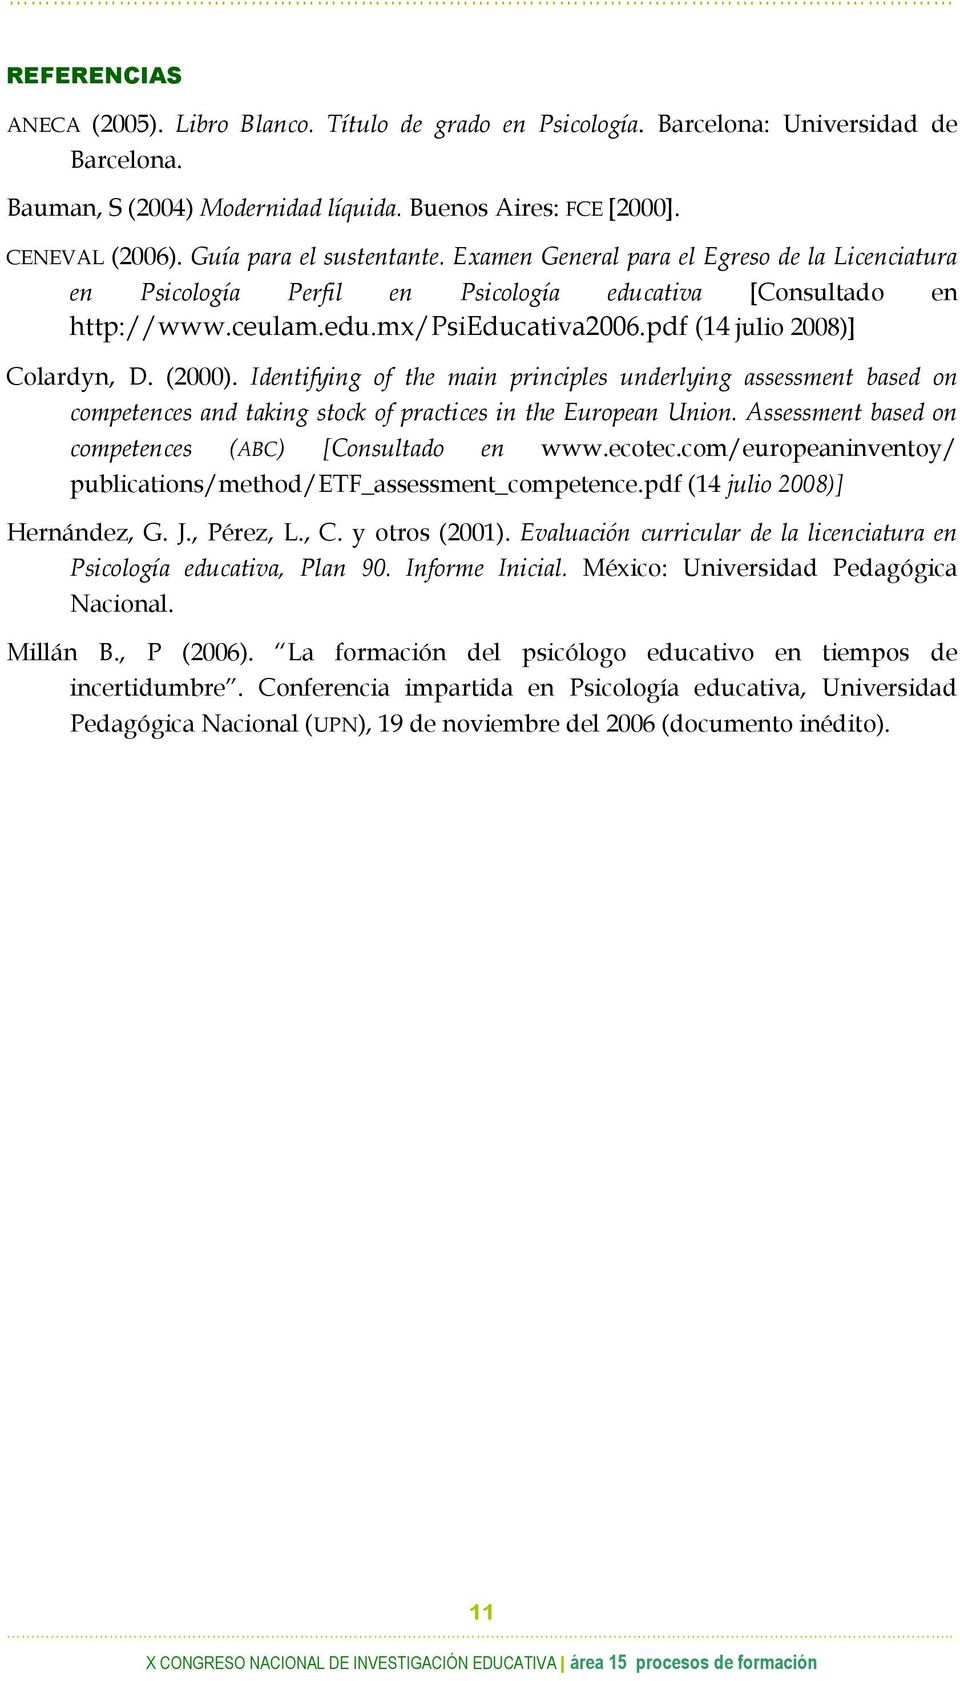 pdf (14 julio 2008)] Colardyn, D. (2000). Identifying of the main principles underlying assessment based on competences and taking stock of practices in the European Union.